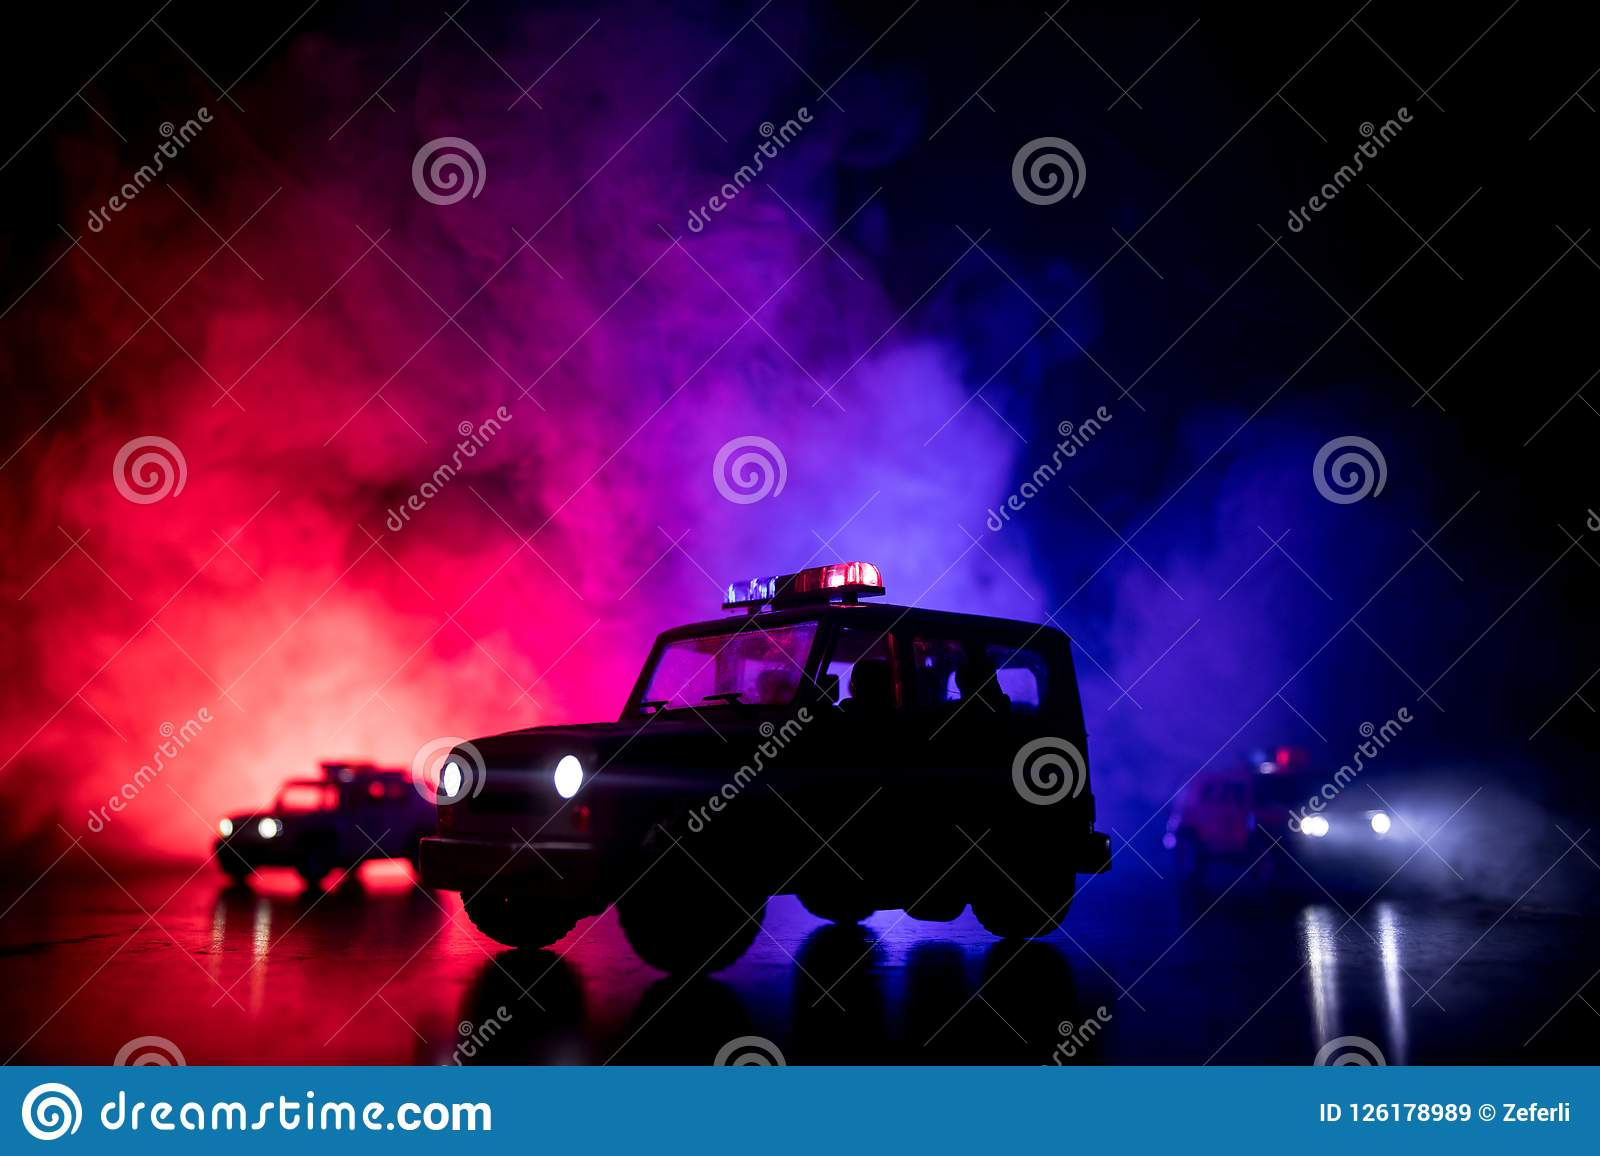 Police car chasing a car at night with fog background. 911 Emergency response police car speeding to scene of crime. Selective foc